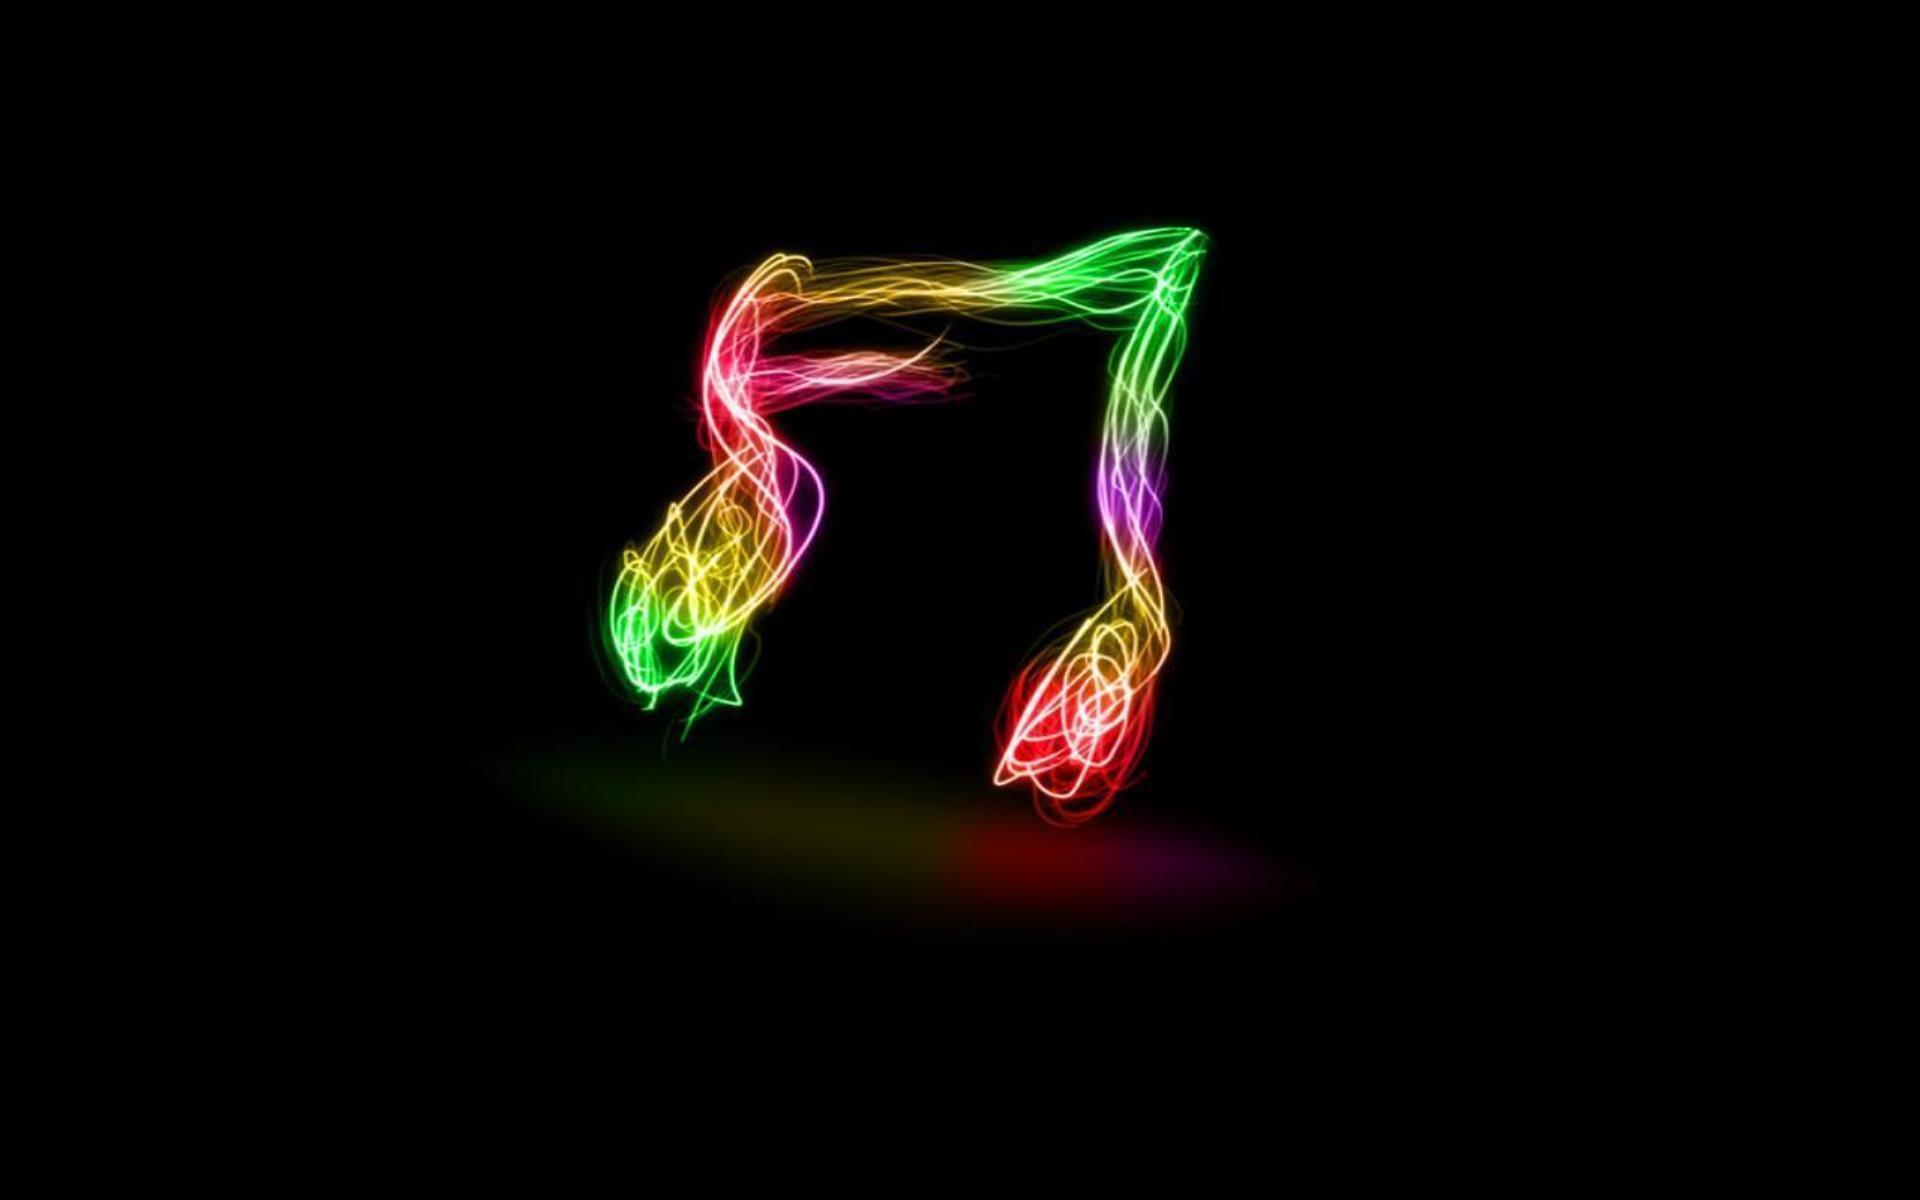 Neon Music Notes Wallpaper: Neon Backgrounds